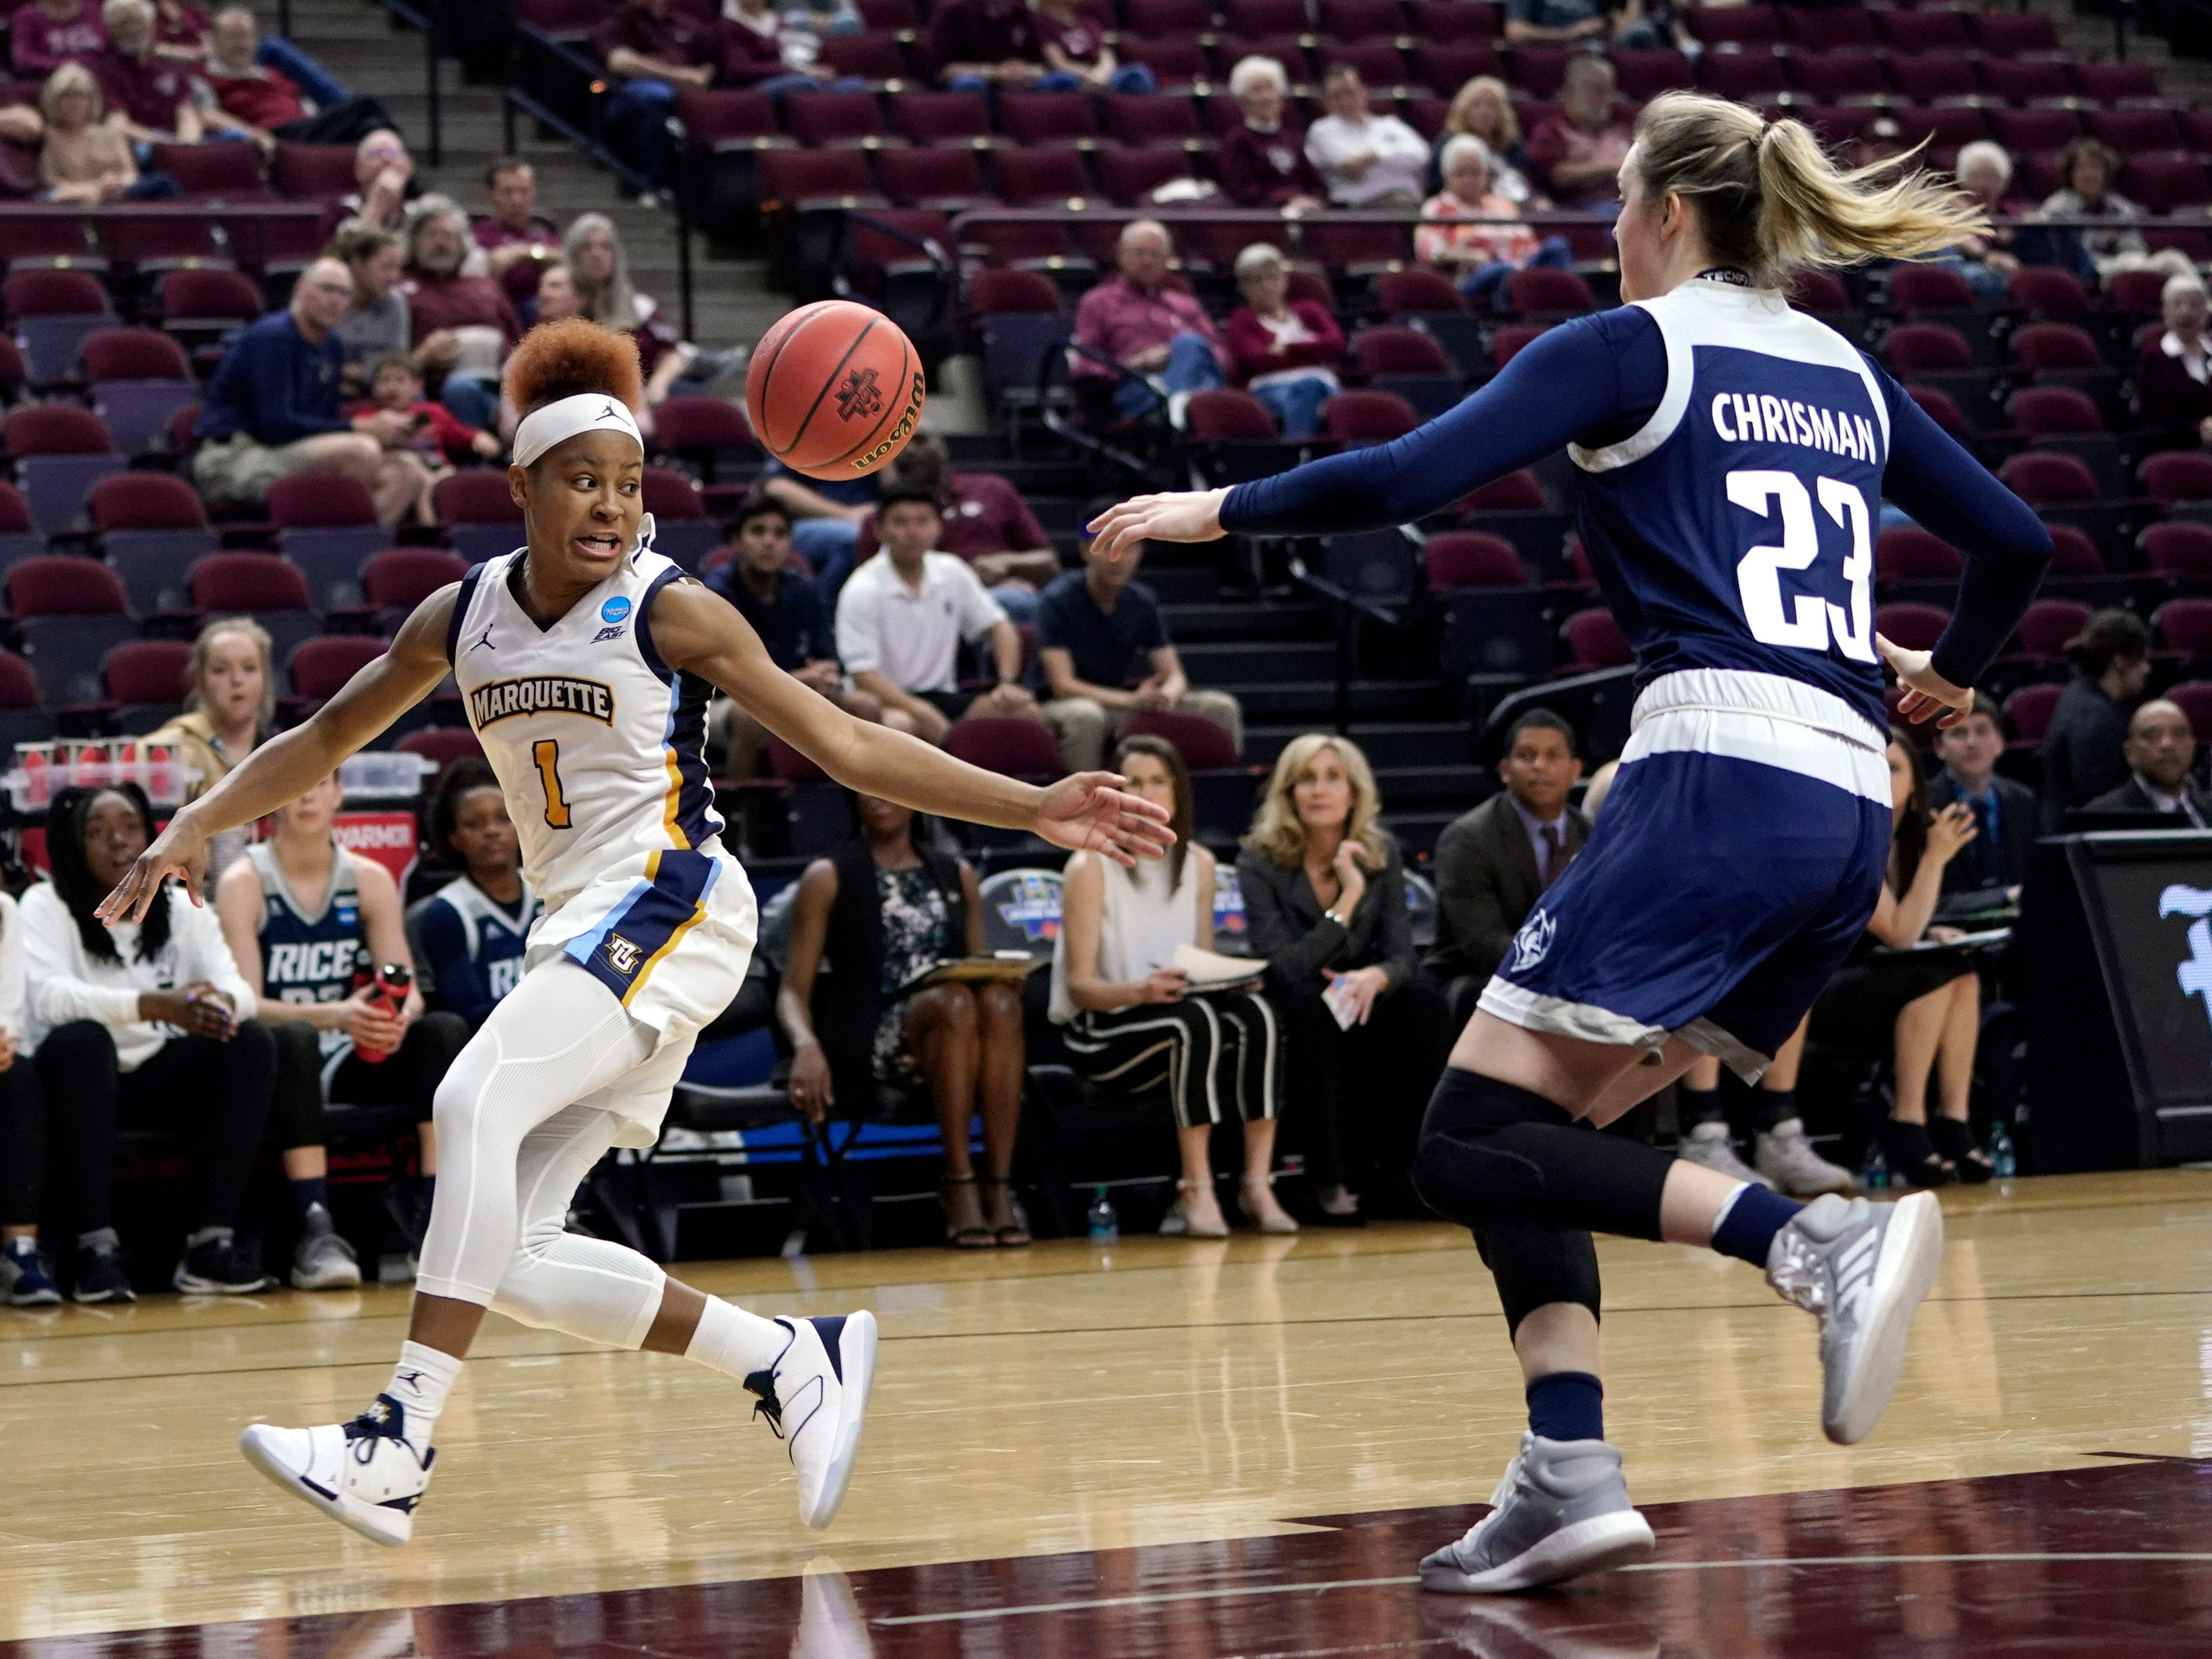 Marquette's Danielle King reaches for a pass as Rice's Alexah Chrisman closes in during the first half.